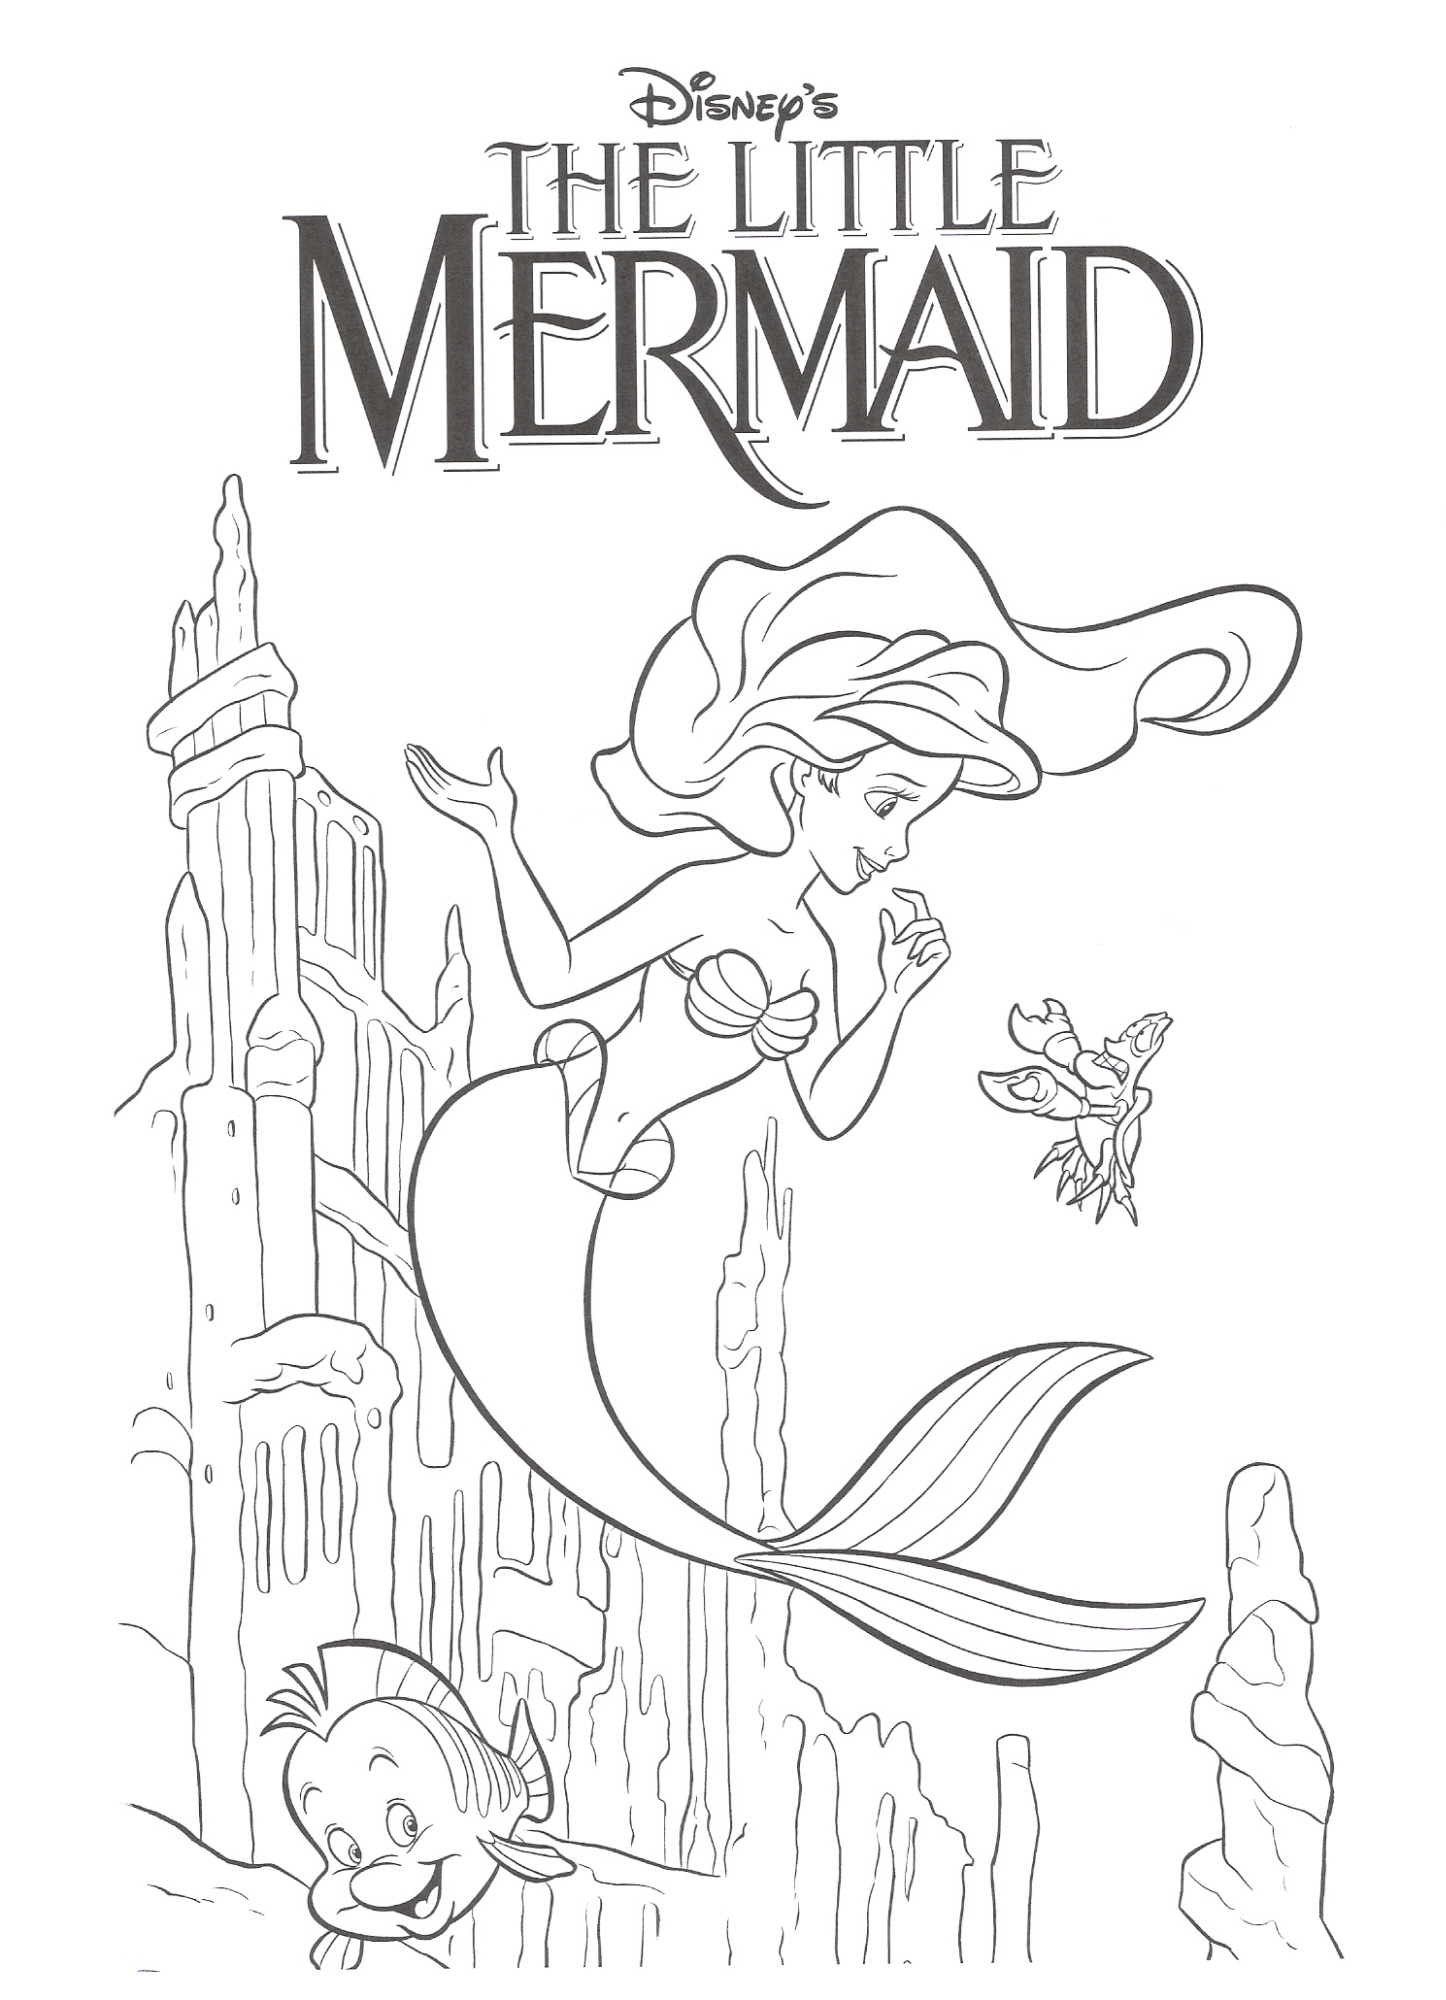 The Little Mermaid Coloring Pages9